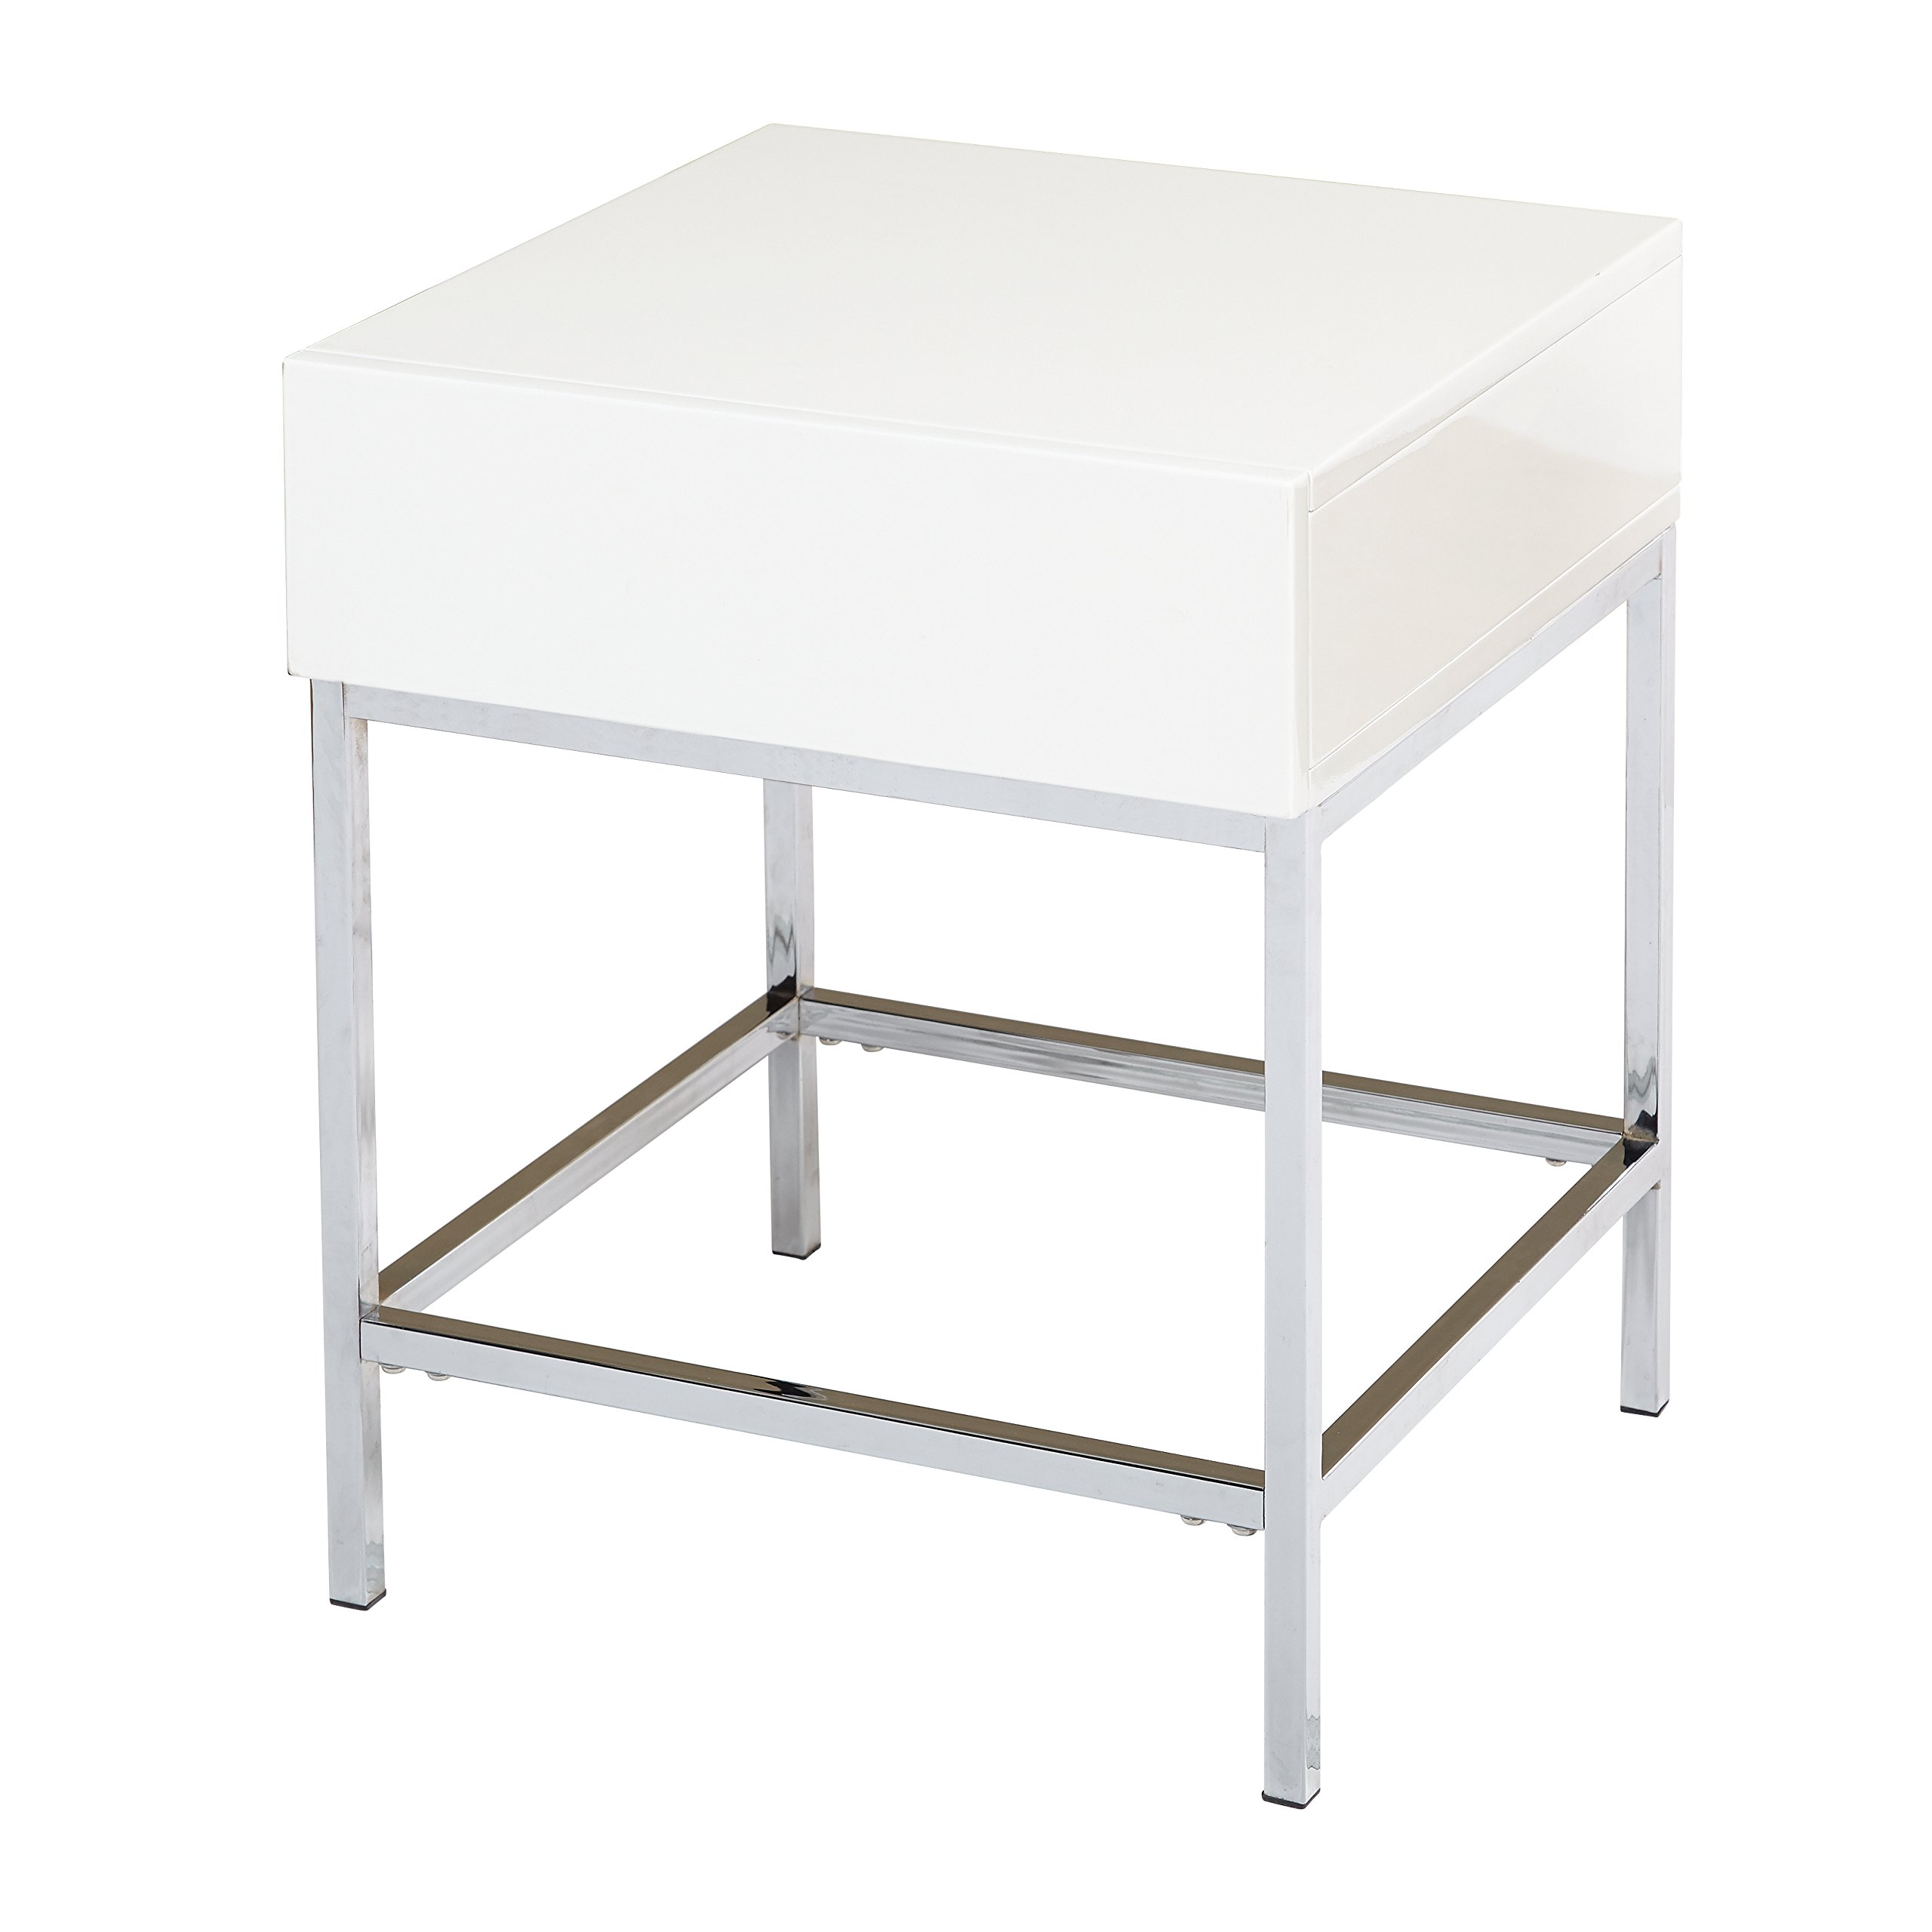 Target Marketing Systems 72401WHT End Table, White by Target Marketing Systems